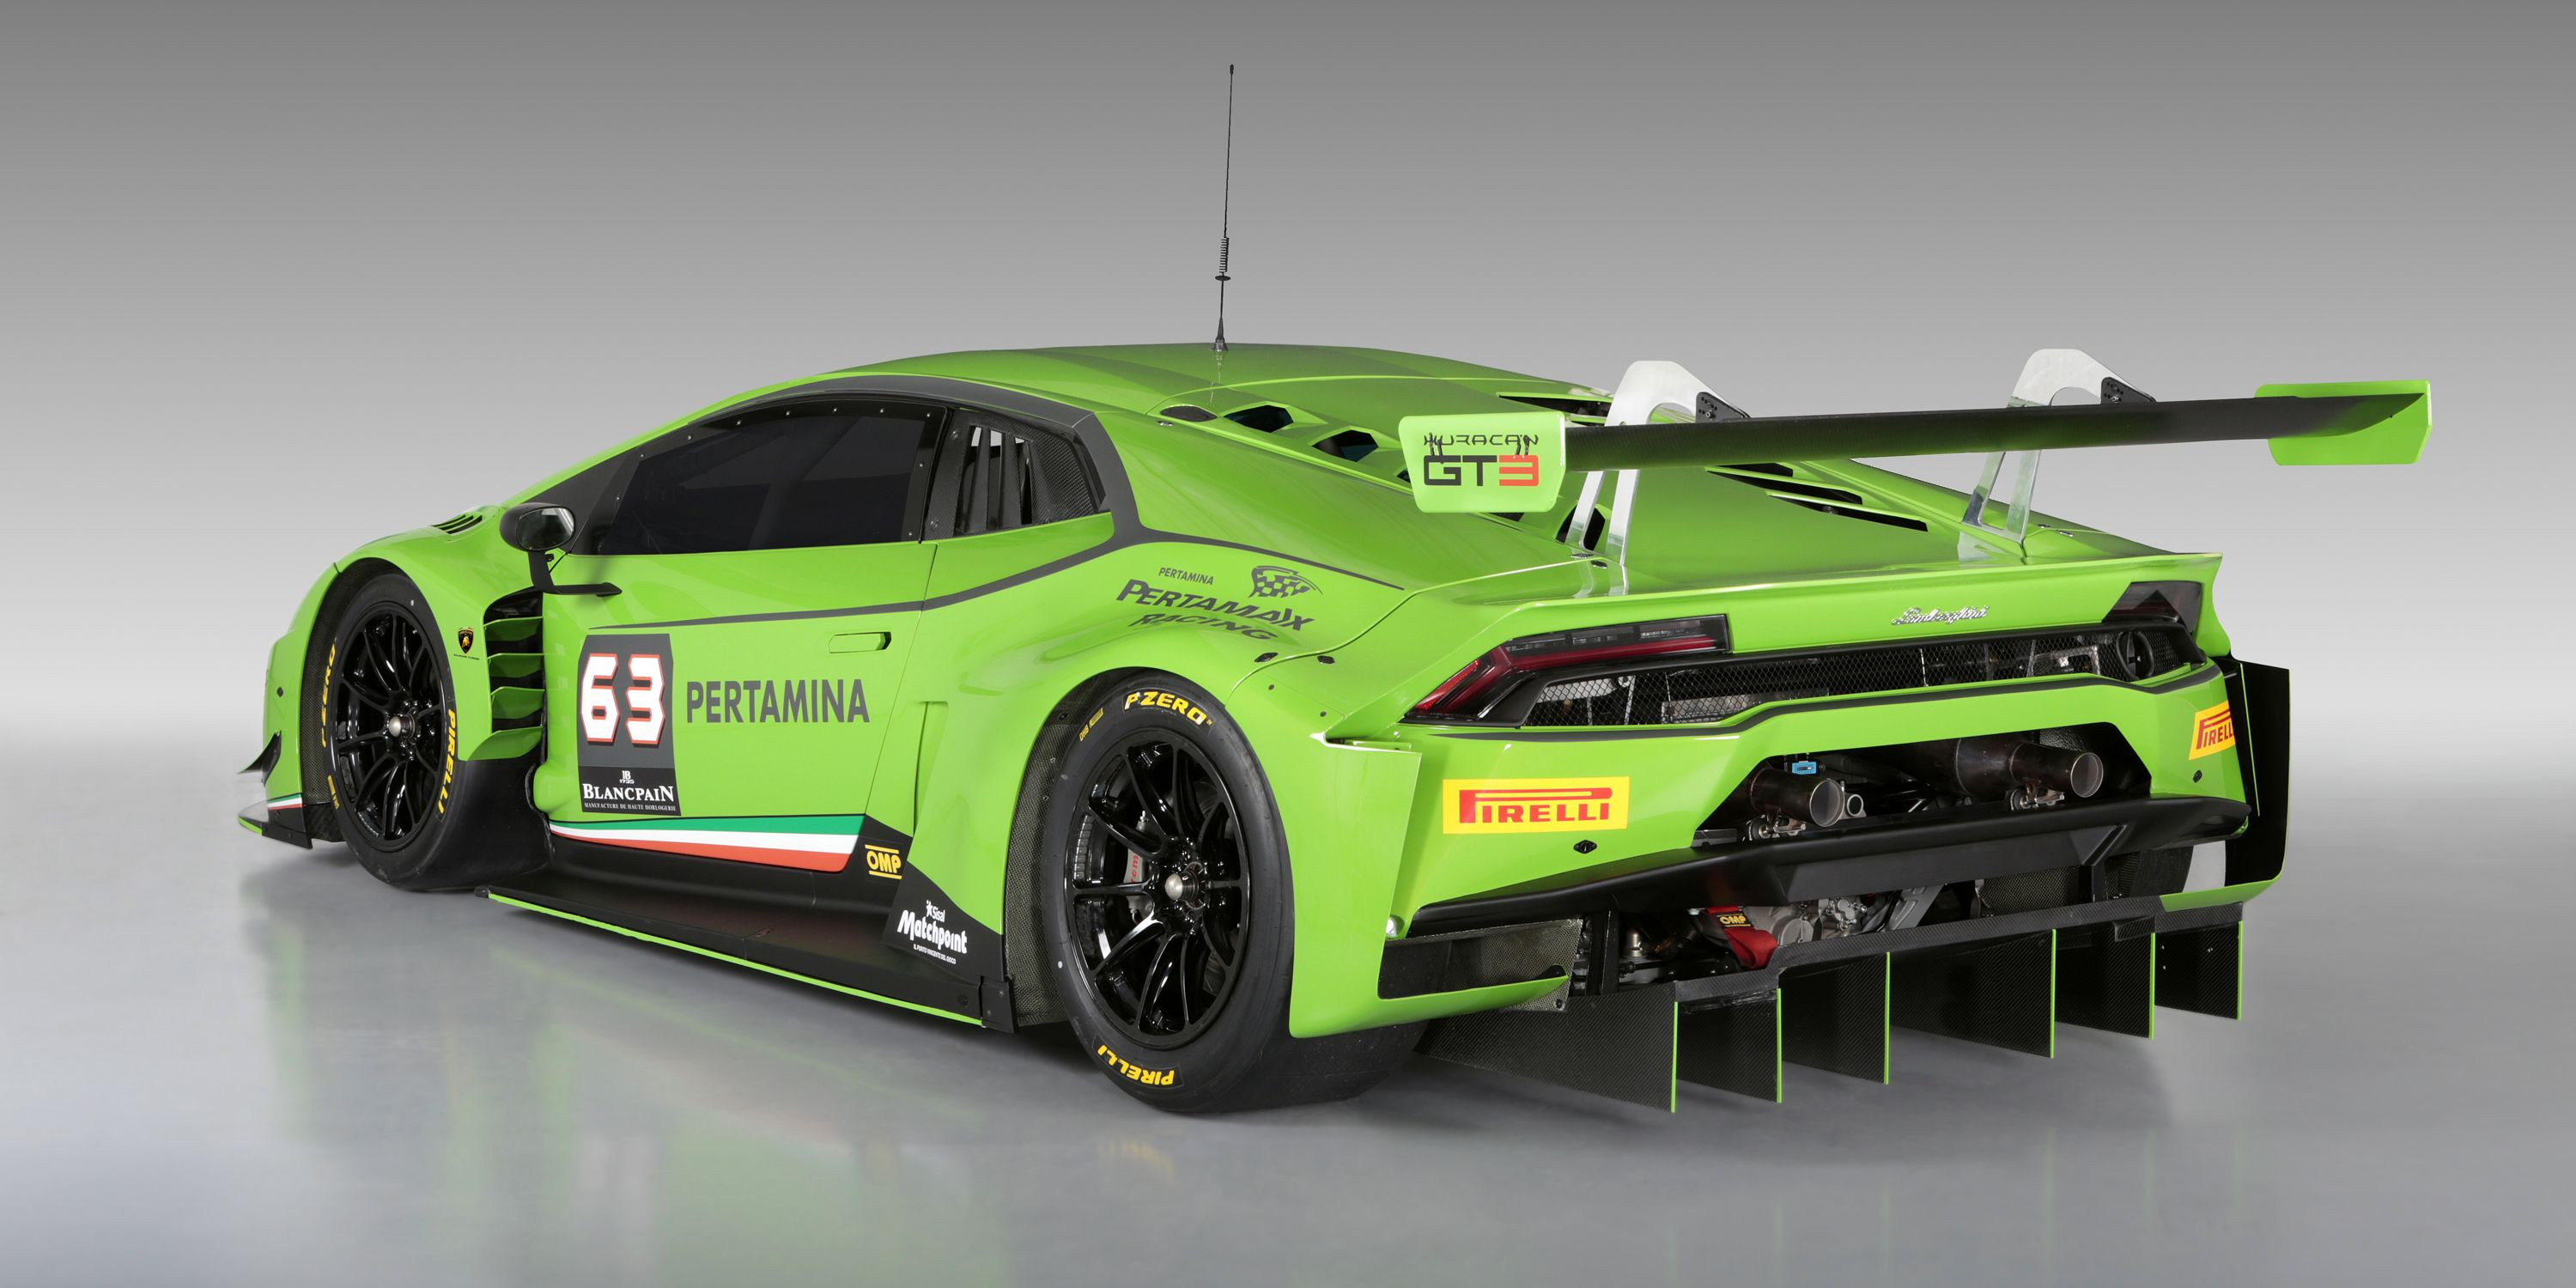 This Lamborghini Huracan Gt3 Is Ready To Race